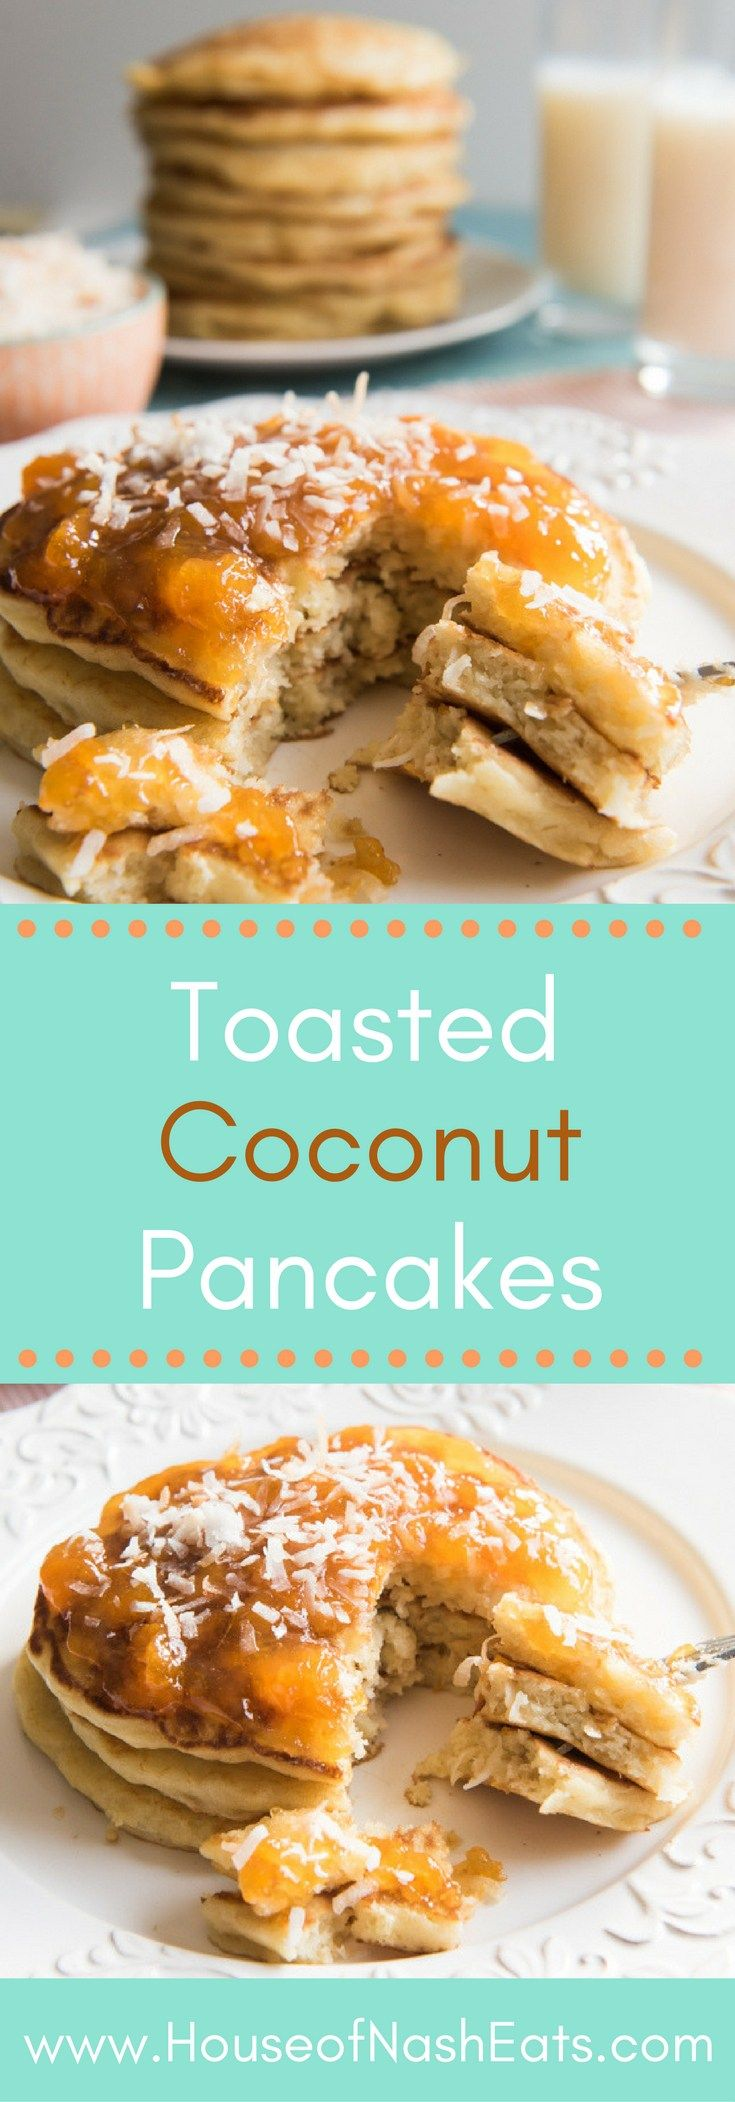 Toasted Coconut Pancakes are light, fluffy, and so easy to make that you don't need to save them just for weekends! Change up your breakfast routine with these yummy and unique pancakes. Made with coconut milk instead of buttermilk, with lots of toasted, sweetened coconut, your family is sure to love these delicious toasted coconut pancakes!